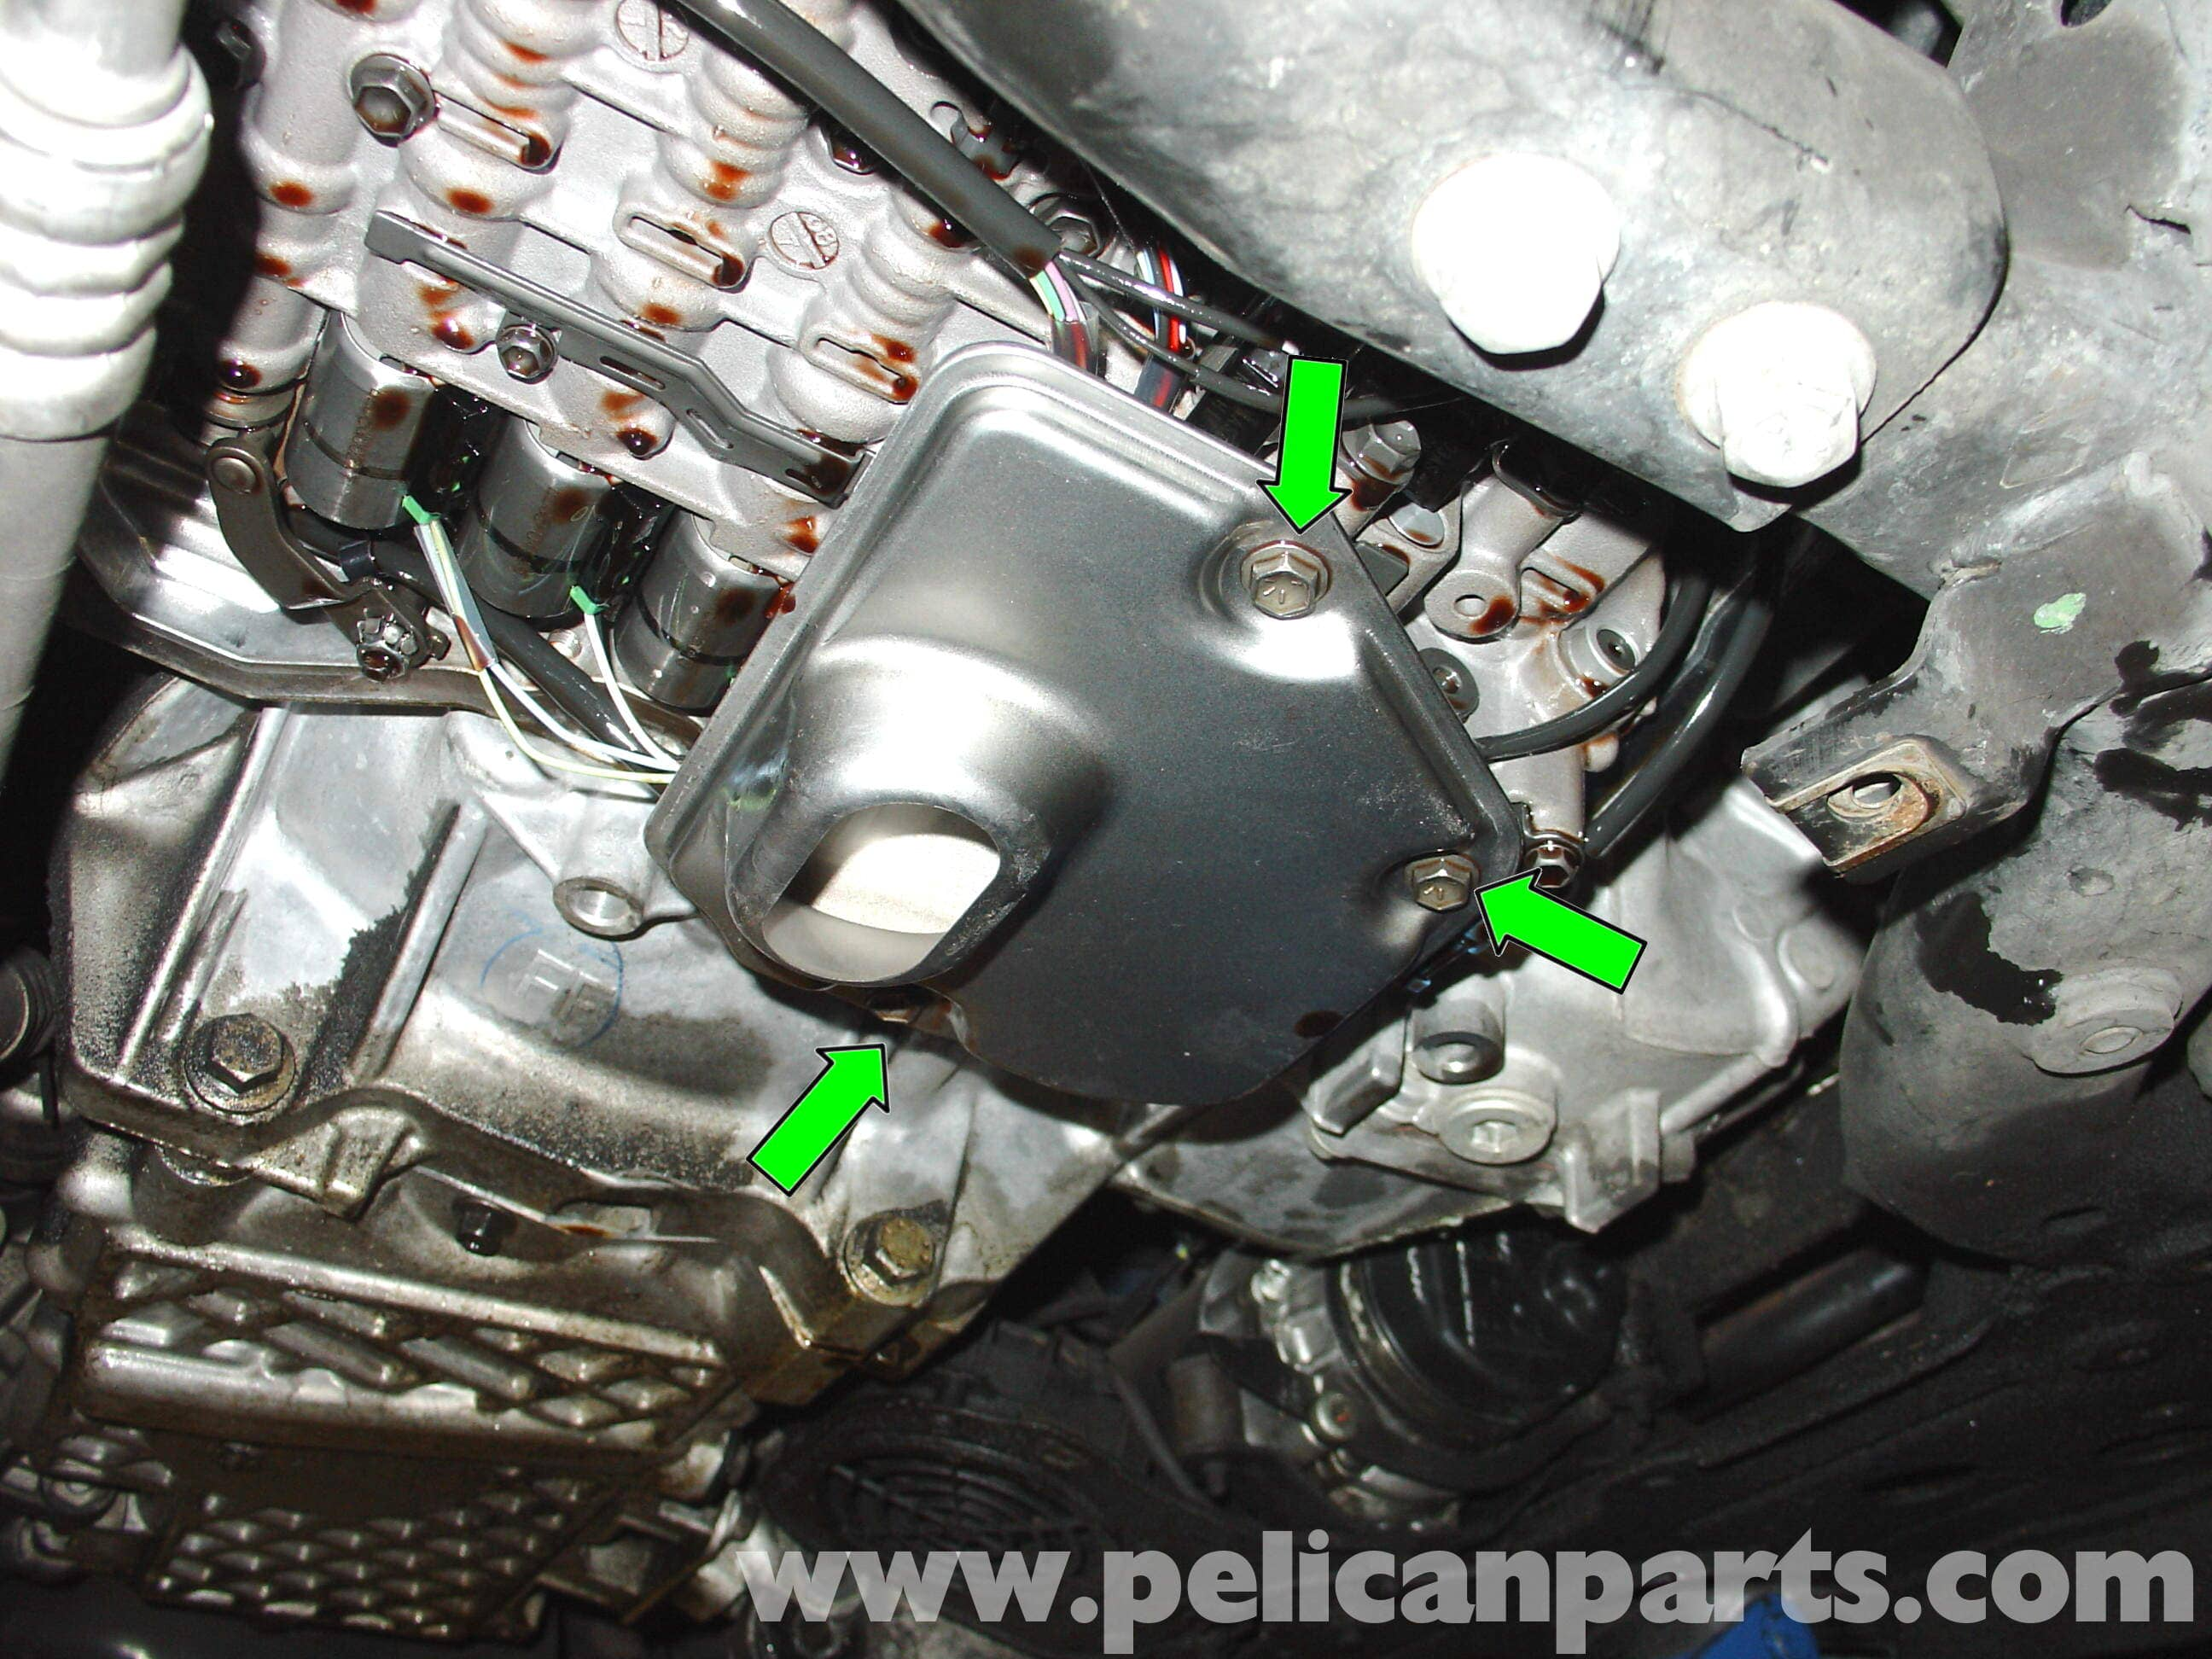 Coolant System Flush Cost together with 2014 Honda Accord Maintenance Schedule together with Saturn Ion 2003 2004 Fuse Box Diagram as well Honda Cr V Accessories further Watch. on 2003 honda pilot transmission